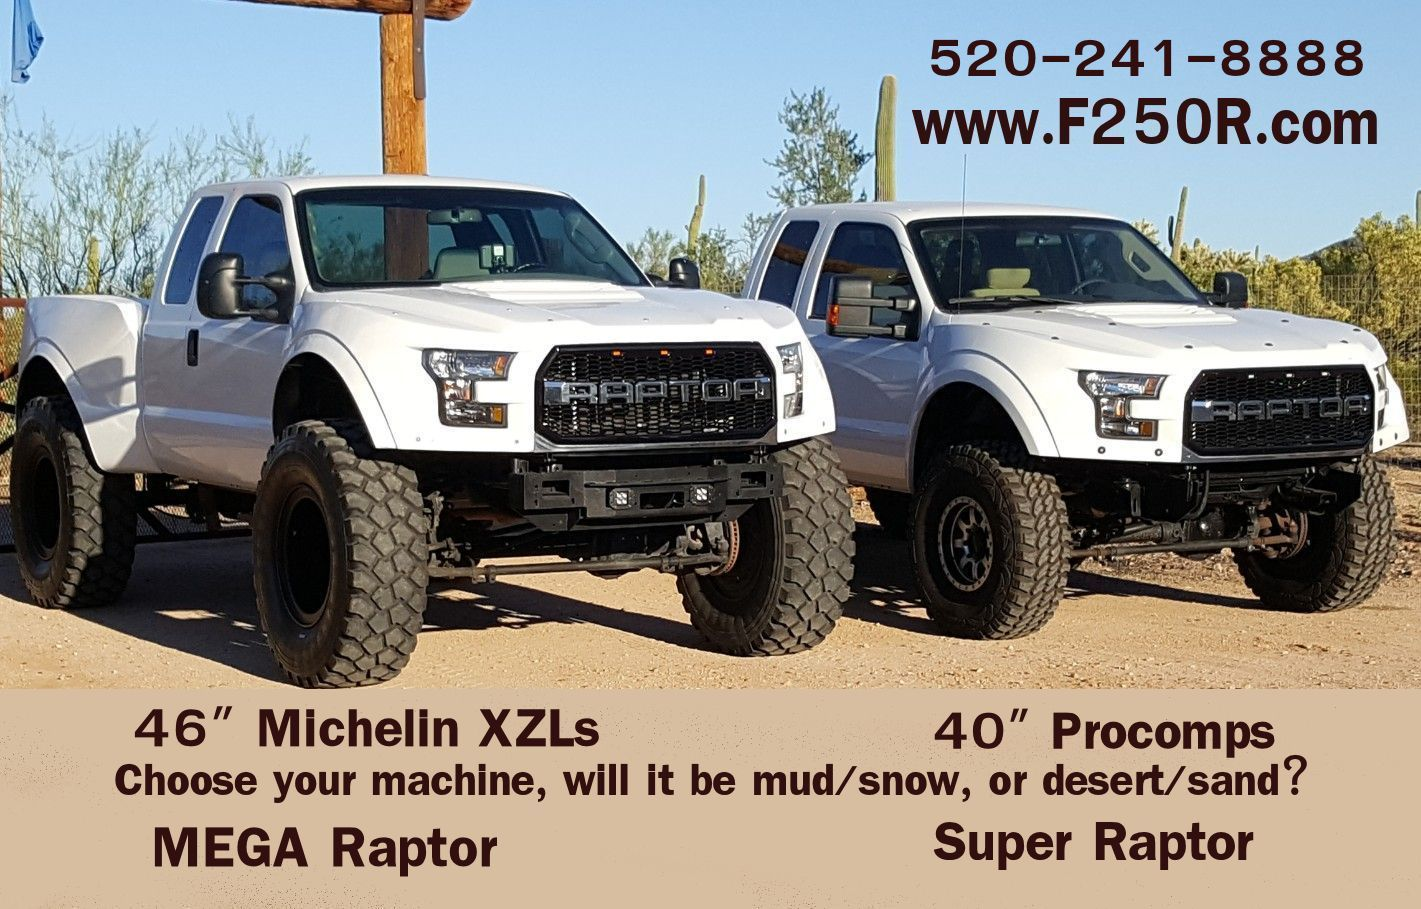 Bug Out Vehicle Creeks Former 4x4 Ford E350 Van moreover E350 Sportsmobile furthermore Awesome Trucks also Ford F350 Econoline Recreational Off Road Cargo Van Extended Body 4x4 Lift Kit 637435 likewise Watch. on ford e 350 lifted